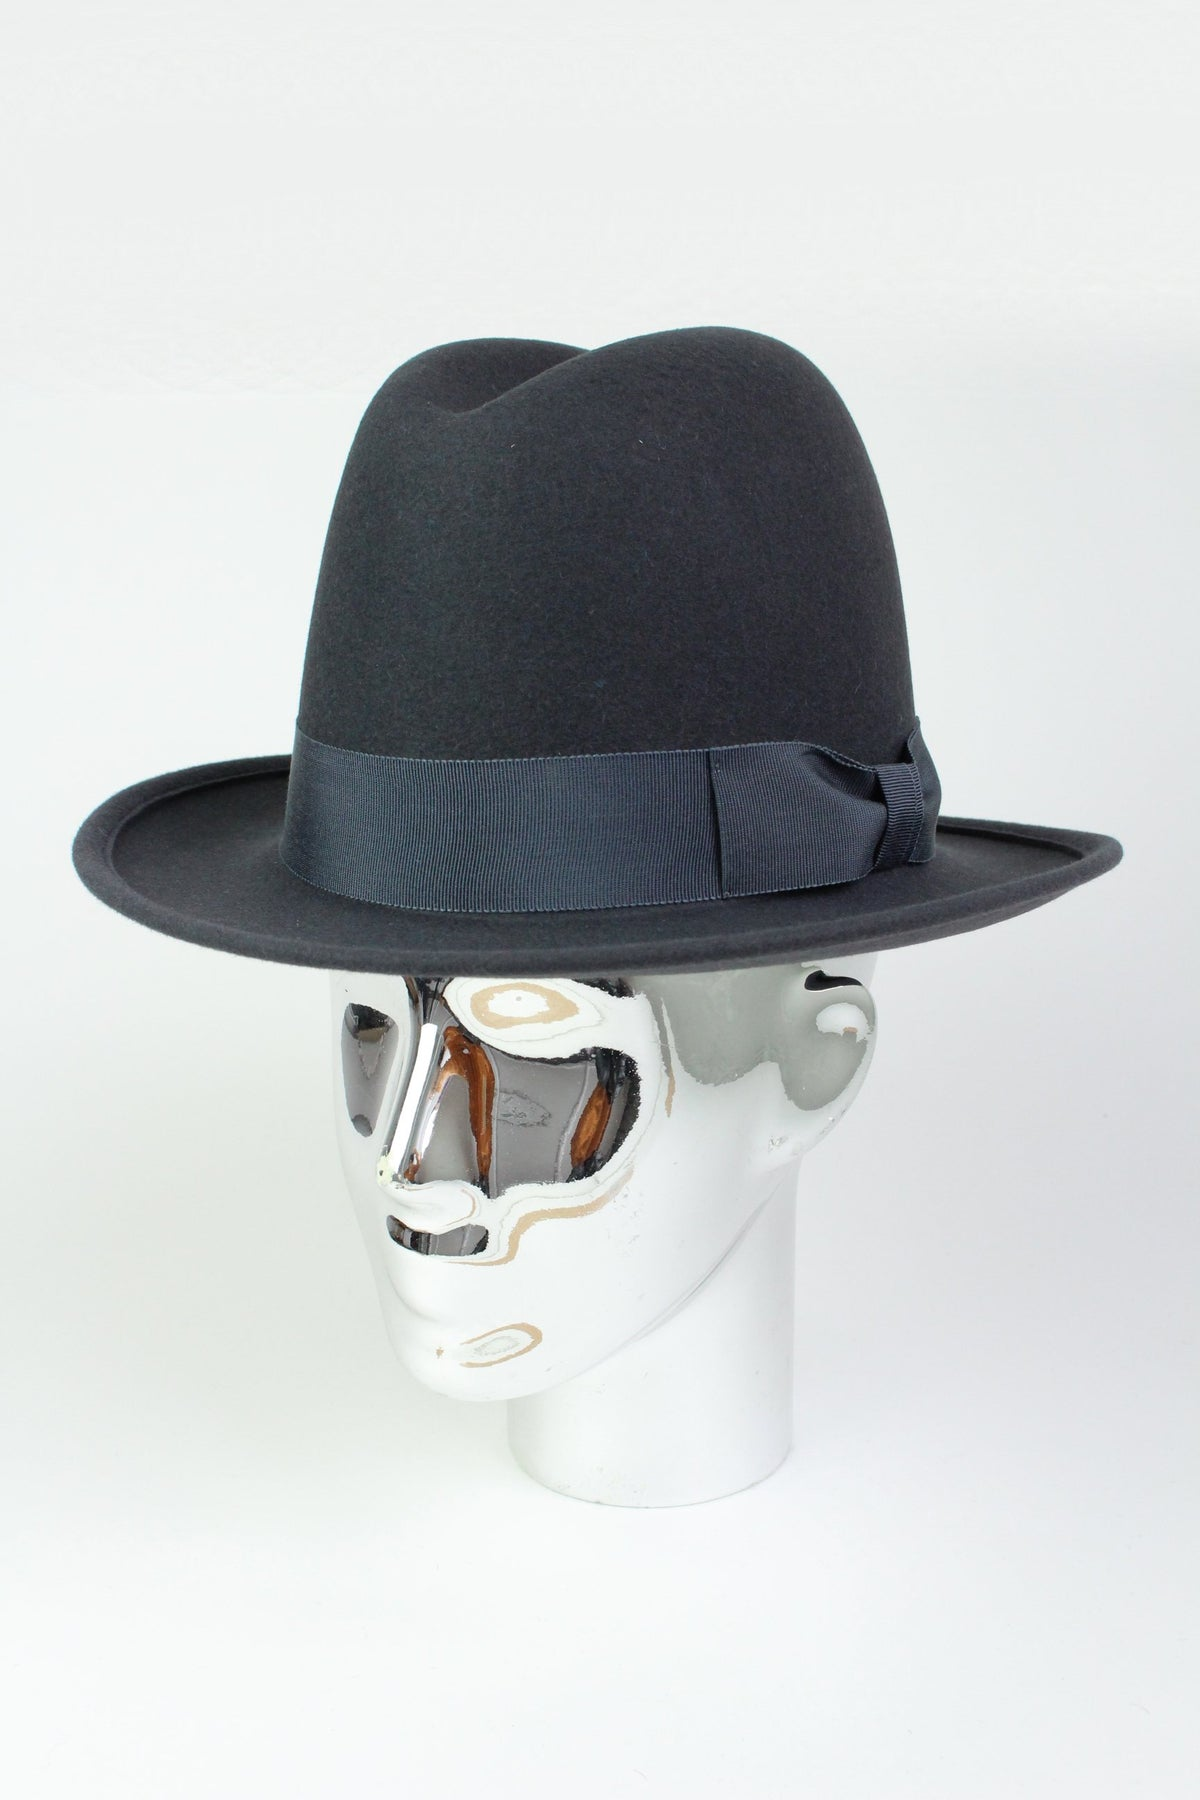 HOMBURG - BRIMSTONE-hats-A Child Of The Jago